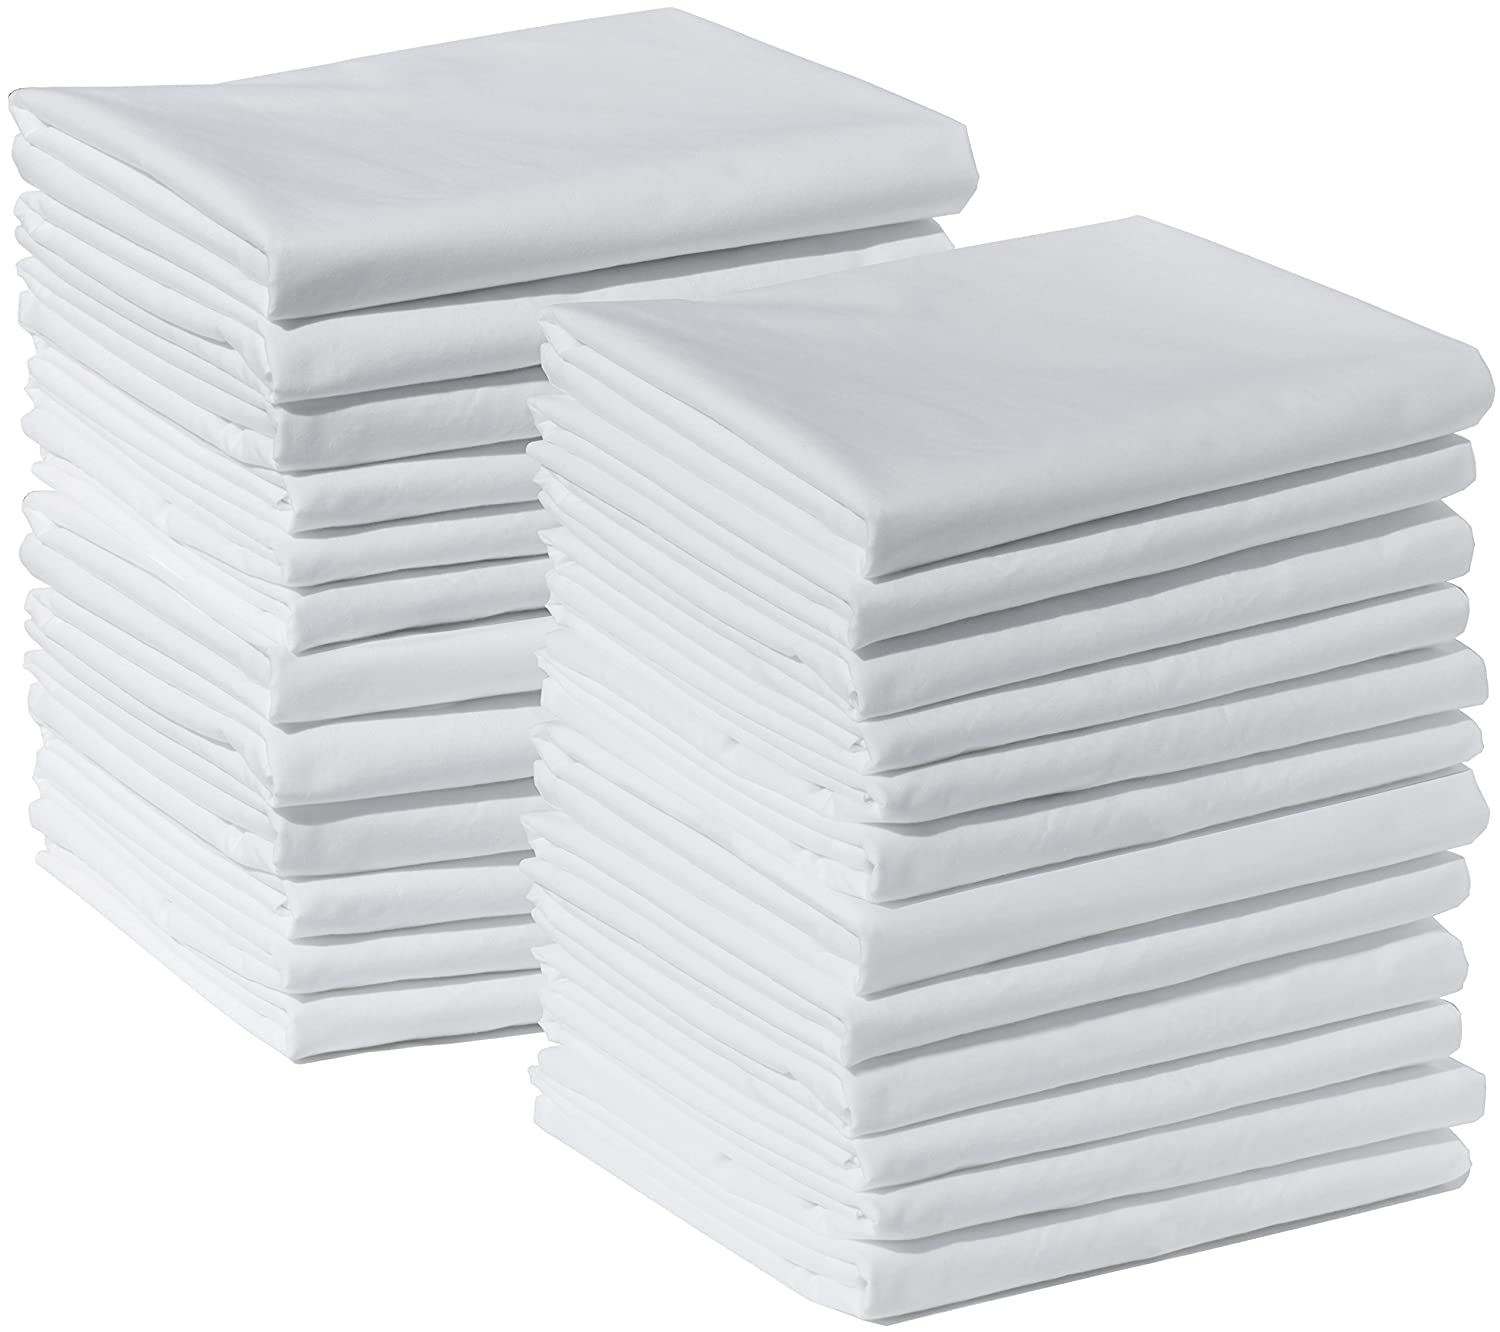 Polycotton Bulk Pack of 24 Standard Size Pillowcases, White 200 Thread Count, 21x30 White (Fits 20 X26 pillow), 2 Dozen, Perfect for Physical Therapy Clinics, Hotels, Camps American Pillowcase FBA_B00DKKKP3Y